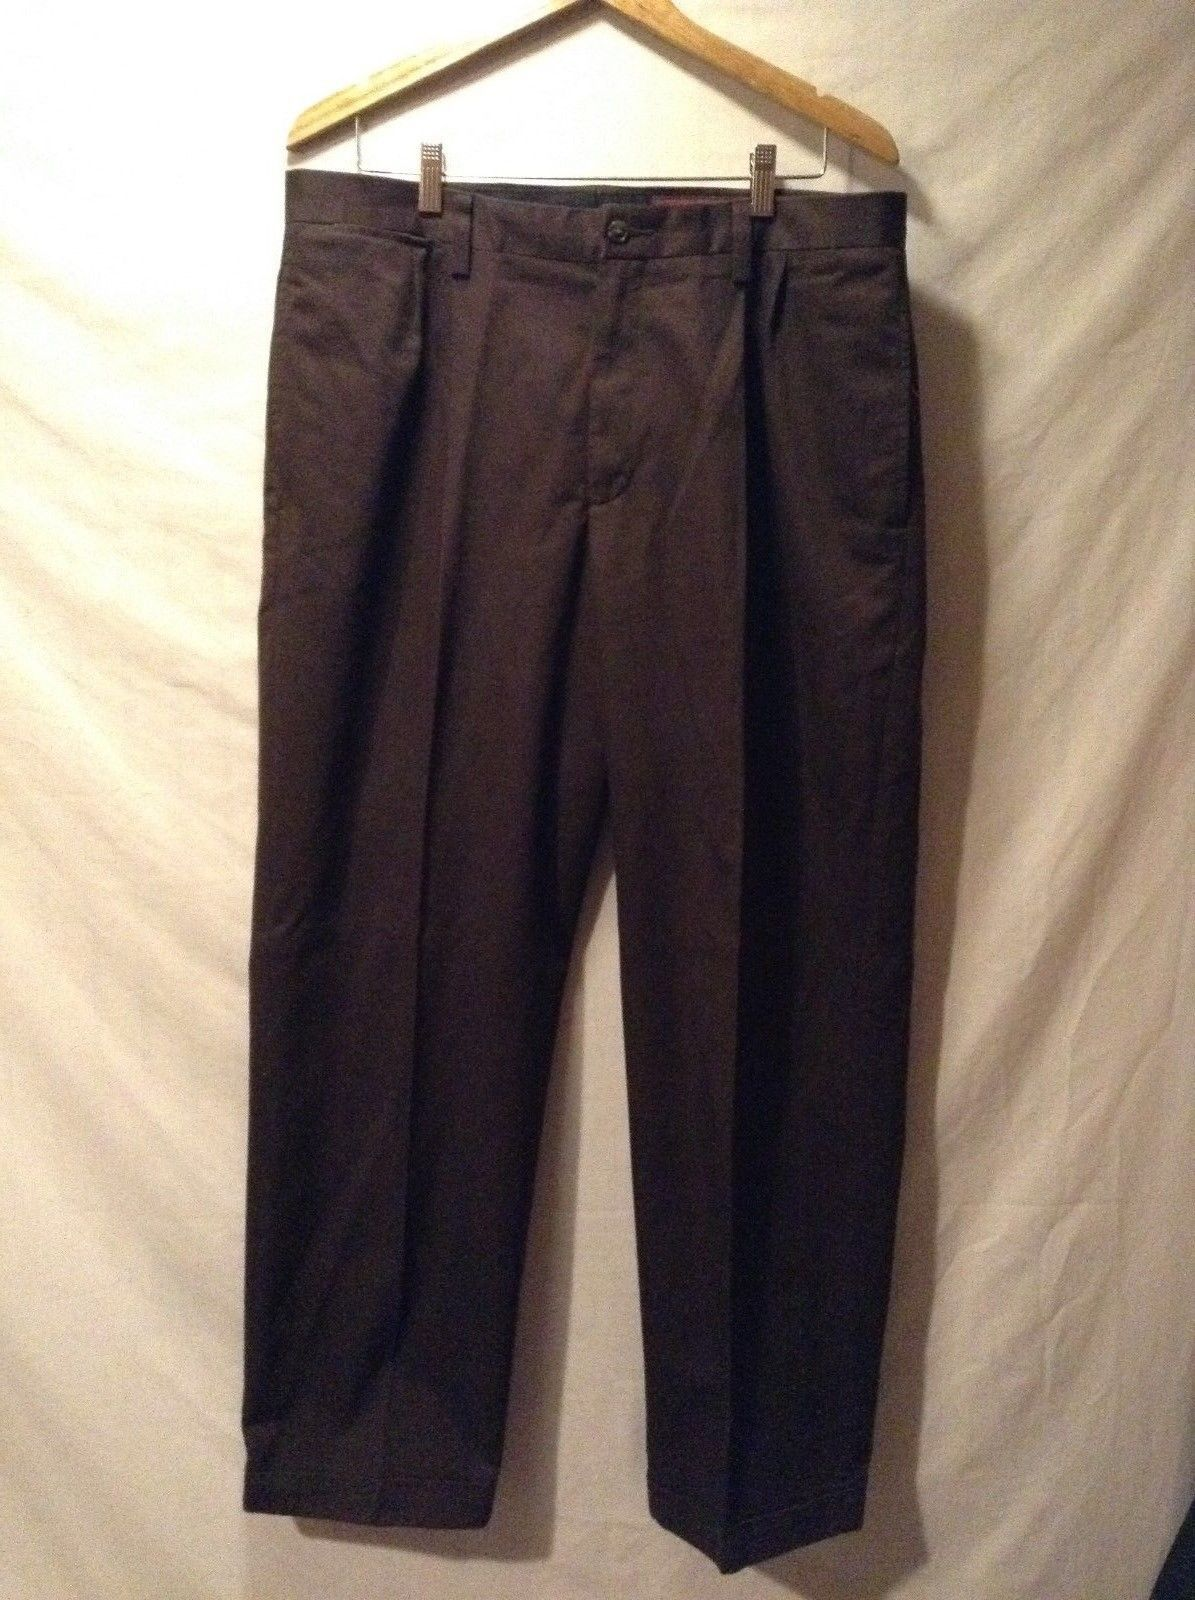 Relaxed Fit Men's Eddie Bauer Brown Pants Sz W36 L32